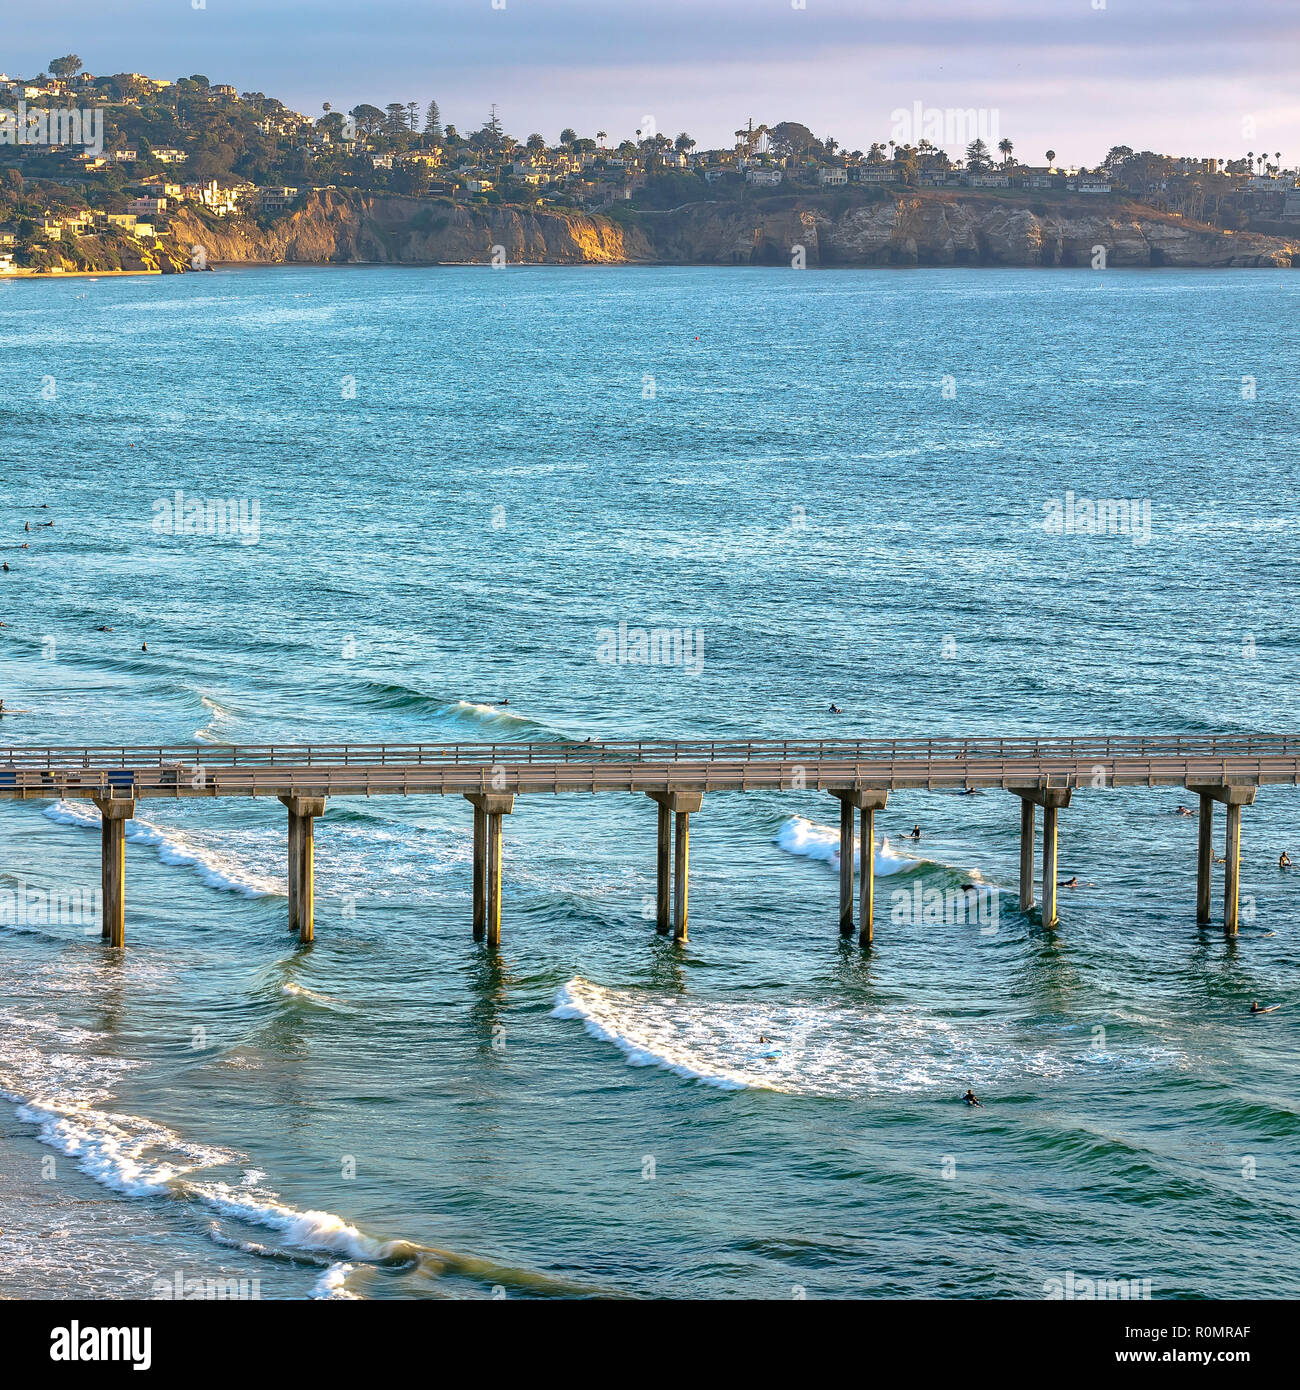 Scripps Pier and houses in the coast of California - Stock Image